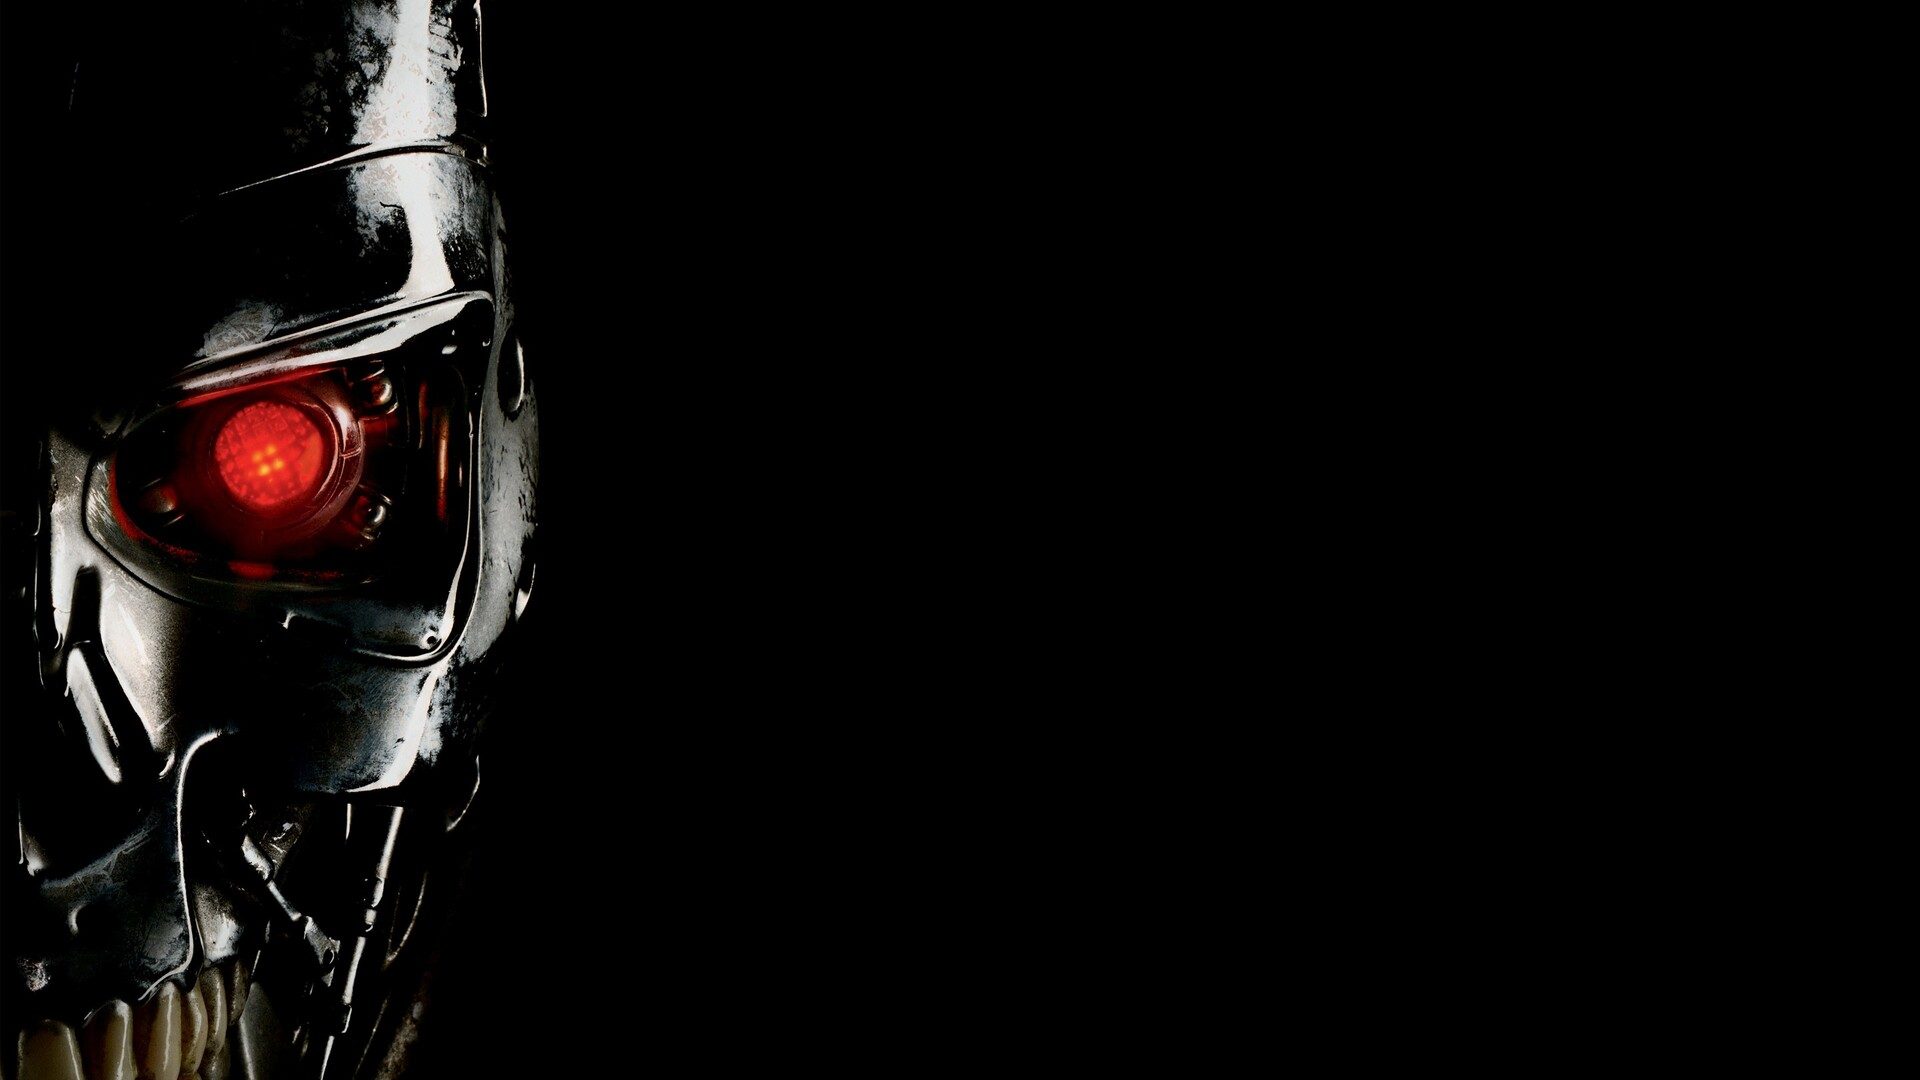 1920x1080 terminator genisys t 800 laptop full hd 1080p hd 4k wallpapers images backgrounds - Terminator 2 wallpaper hd ...